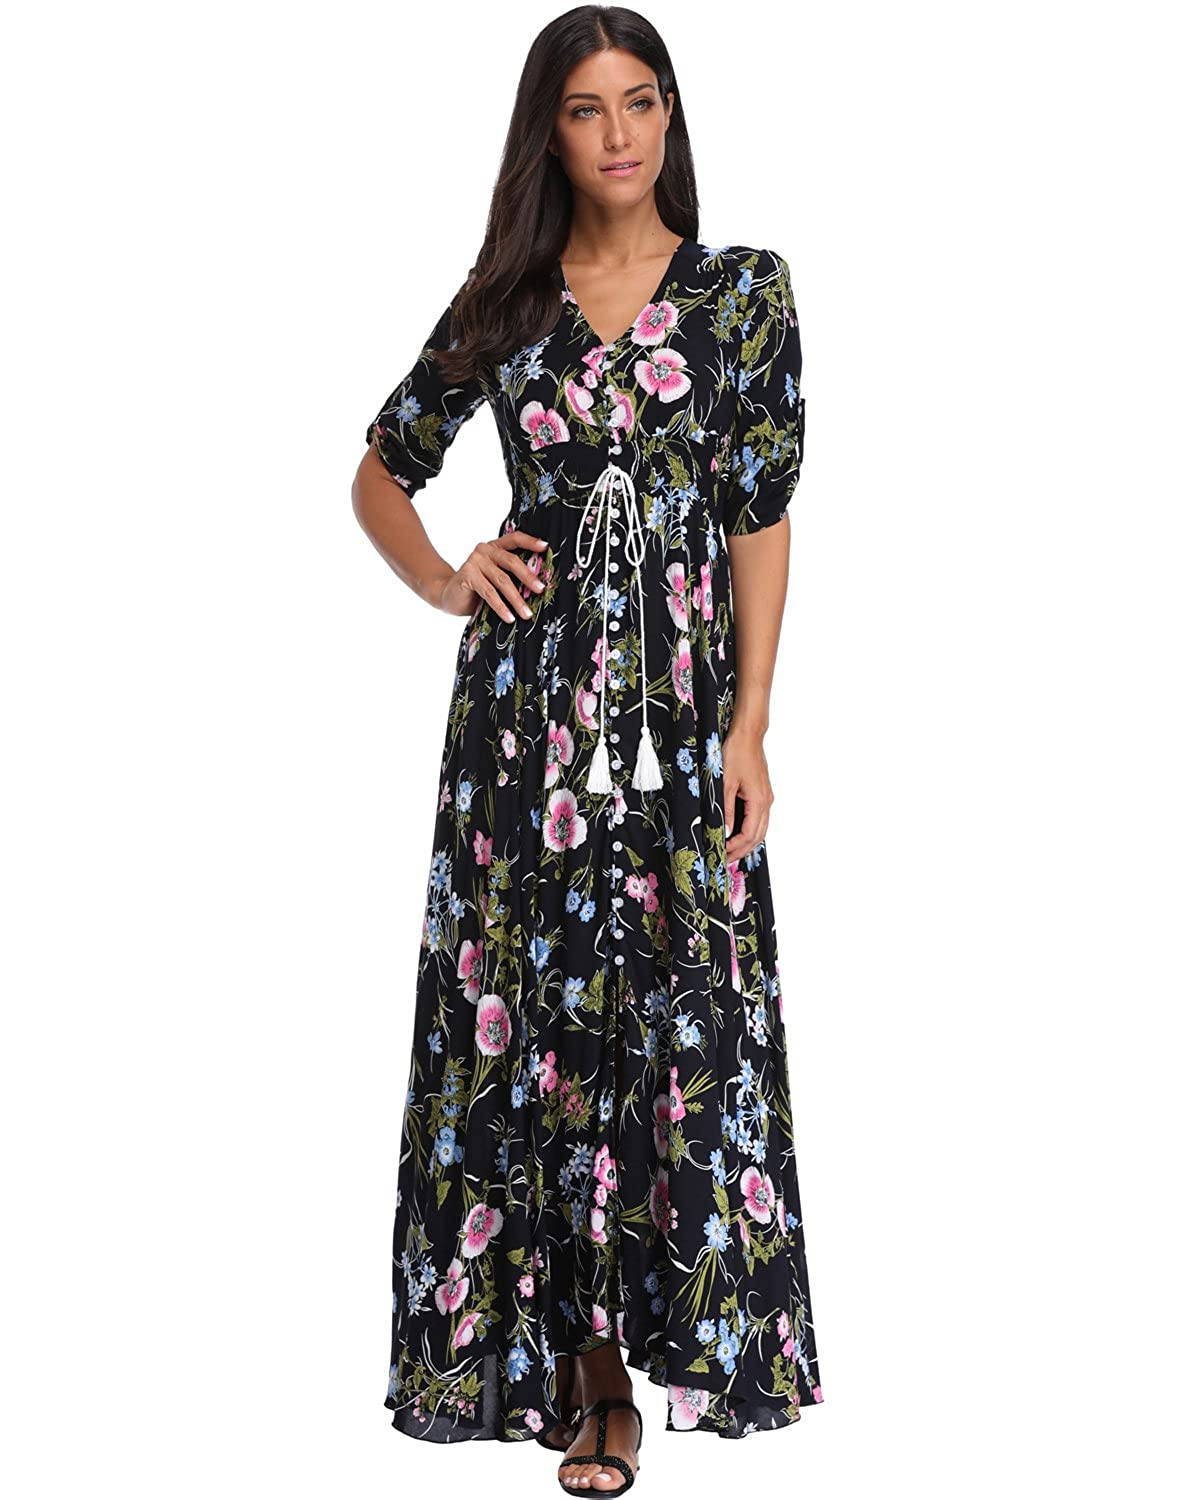 410caf6bac9 Summer Floral Print Maxi Dress Women Button Up Split Long Flowy Bohemian  Beach Party Dresses at Amazon Women s Clothing store